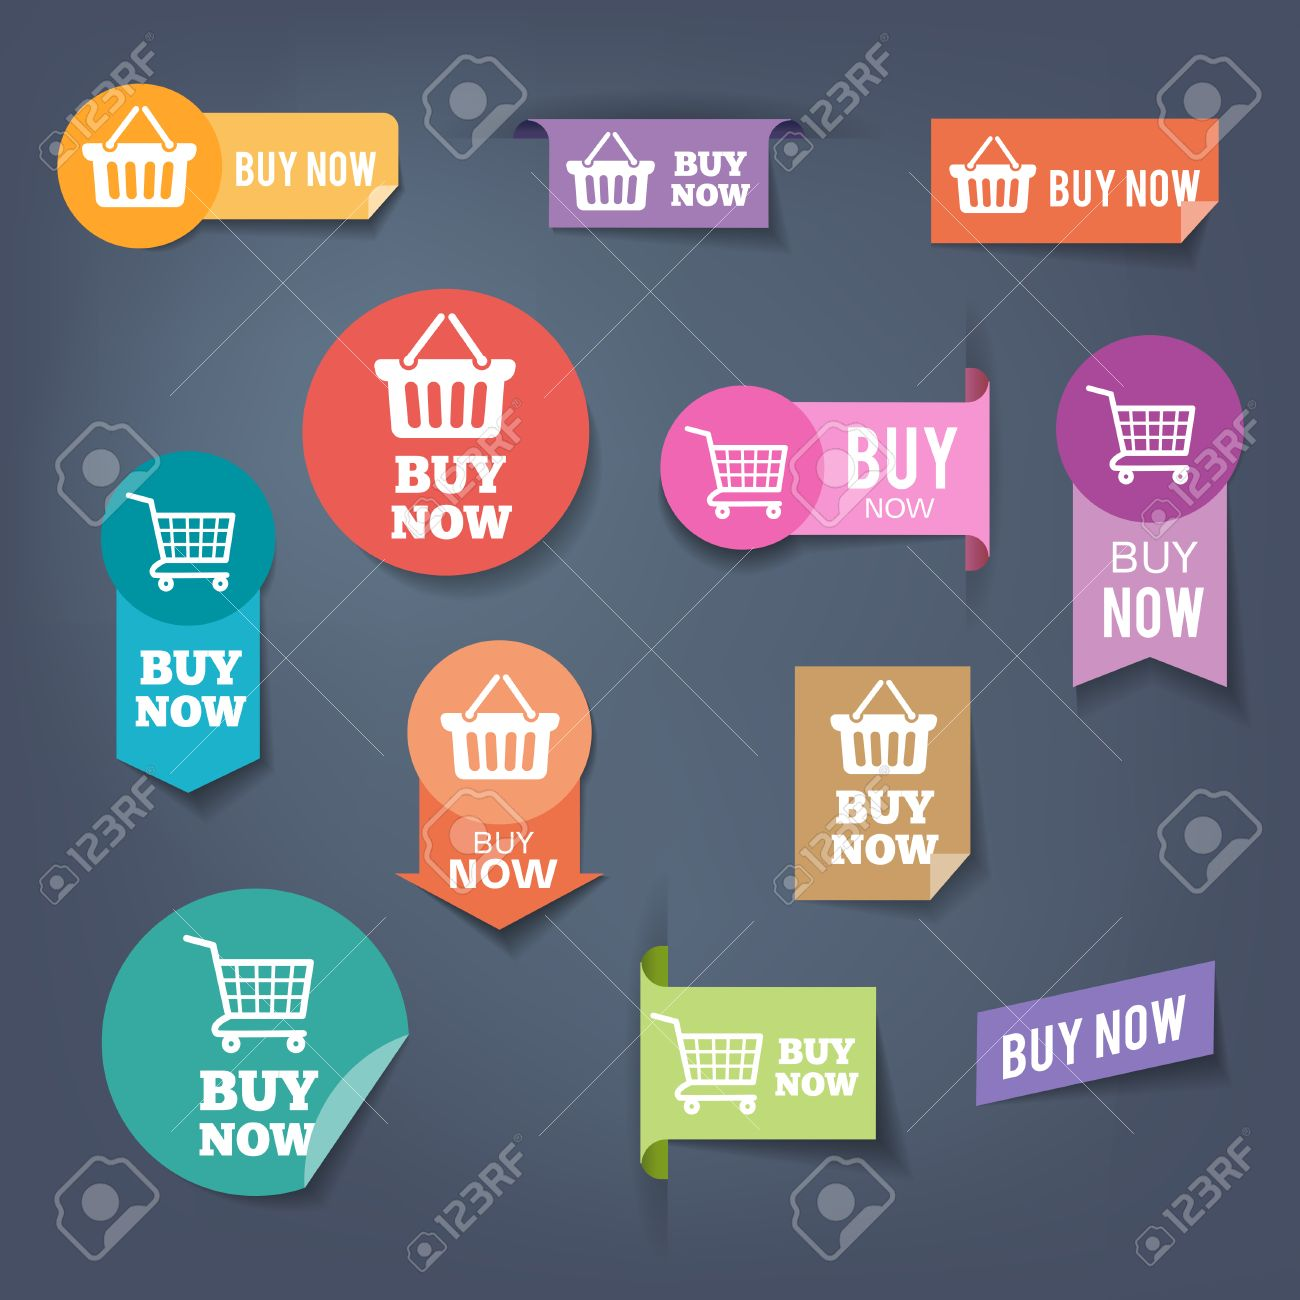 """Collection of sales buttons """"Buy Now"""". Colorful flat design style. - 50453703"""